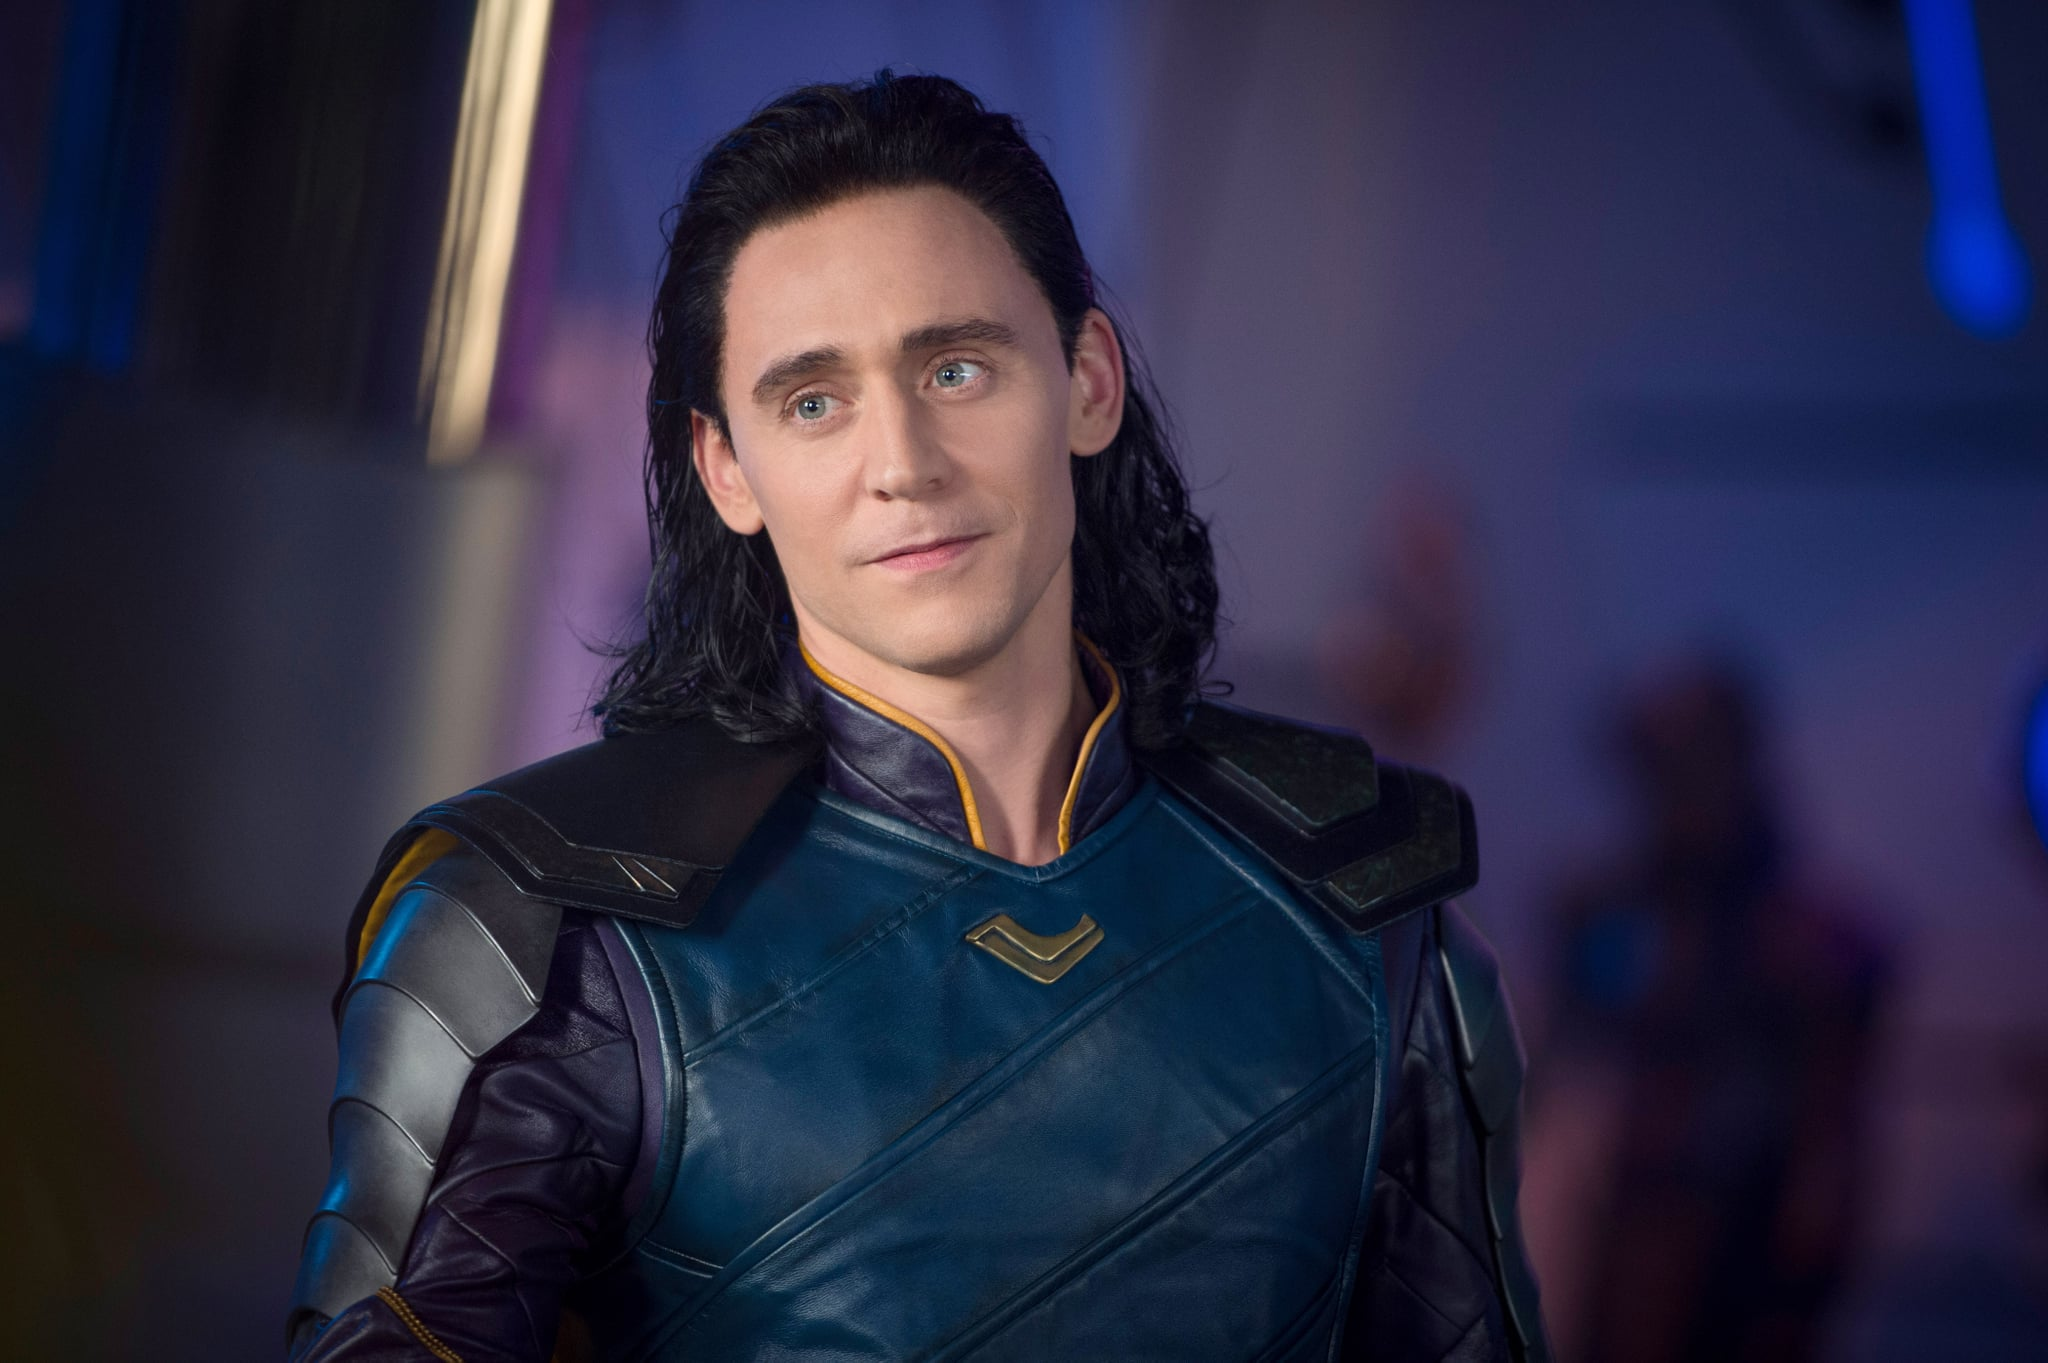 THOR: RAGNAROK, Tom Hiddleston, as Loki, 2017. ph: Jasin Boland/ Marvel /  Walt Disney Studios Motion Pictures /Courtesy Everett Collection